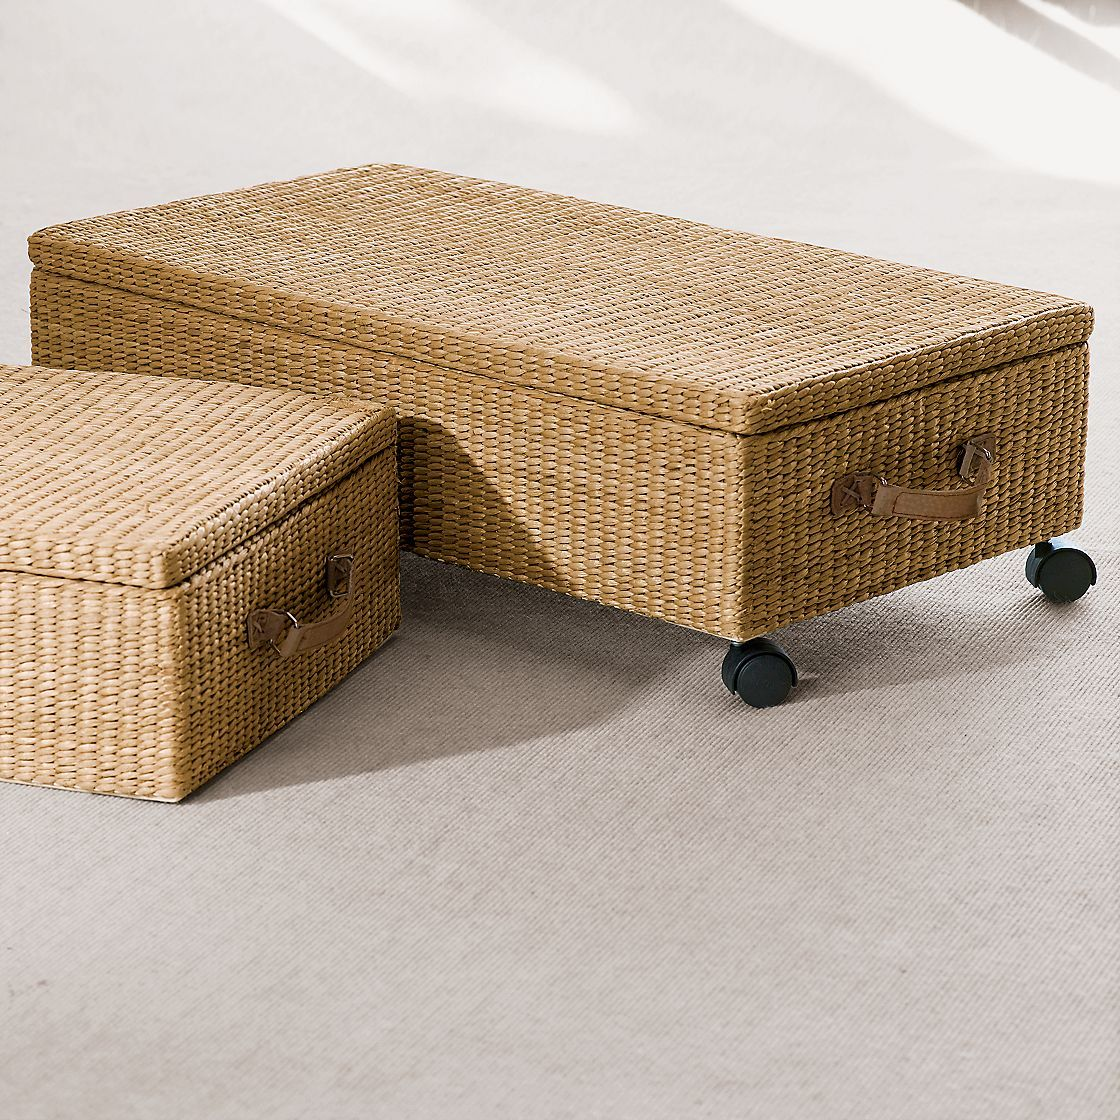 Under The Bed Storage On Wheels Simple Company Store Under The Bed Box With Wheelsif You Are Going To Decorating Design